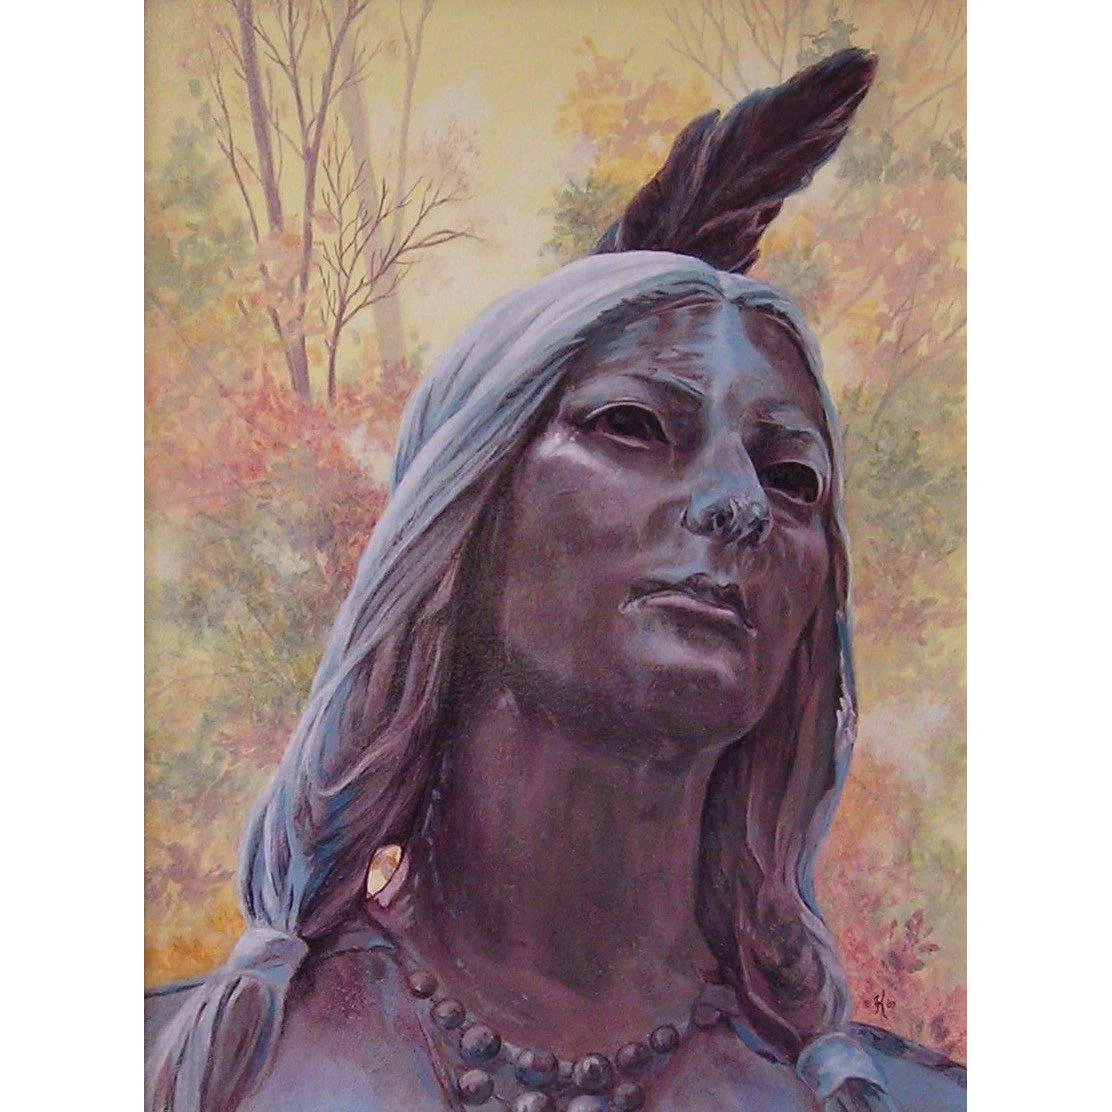 Beads Amp Feathers Pocahontas Original Acrylic Painting By